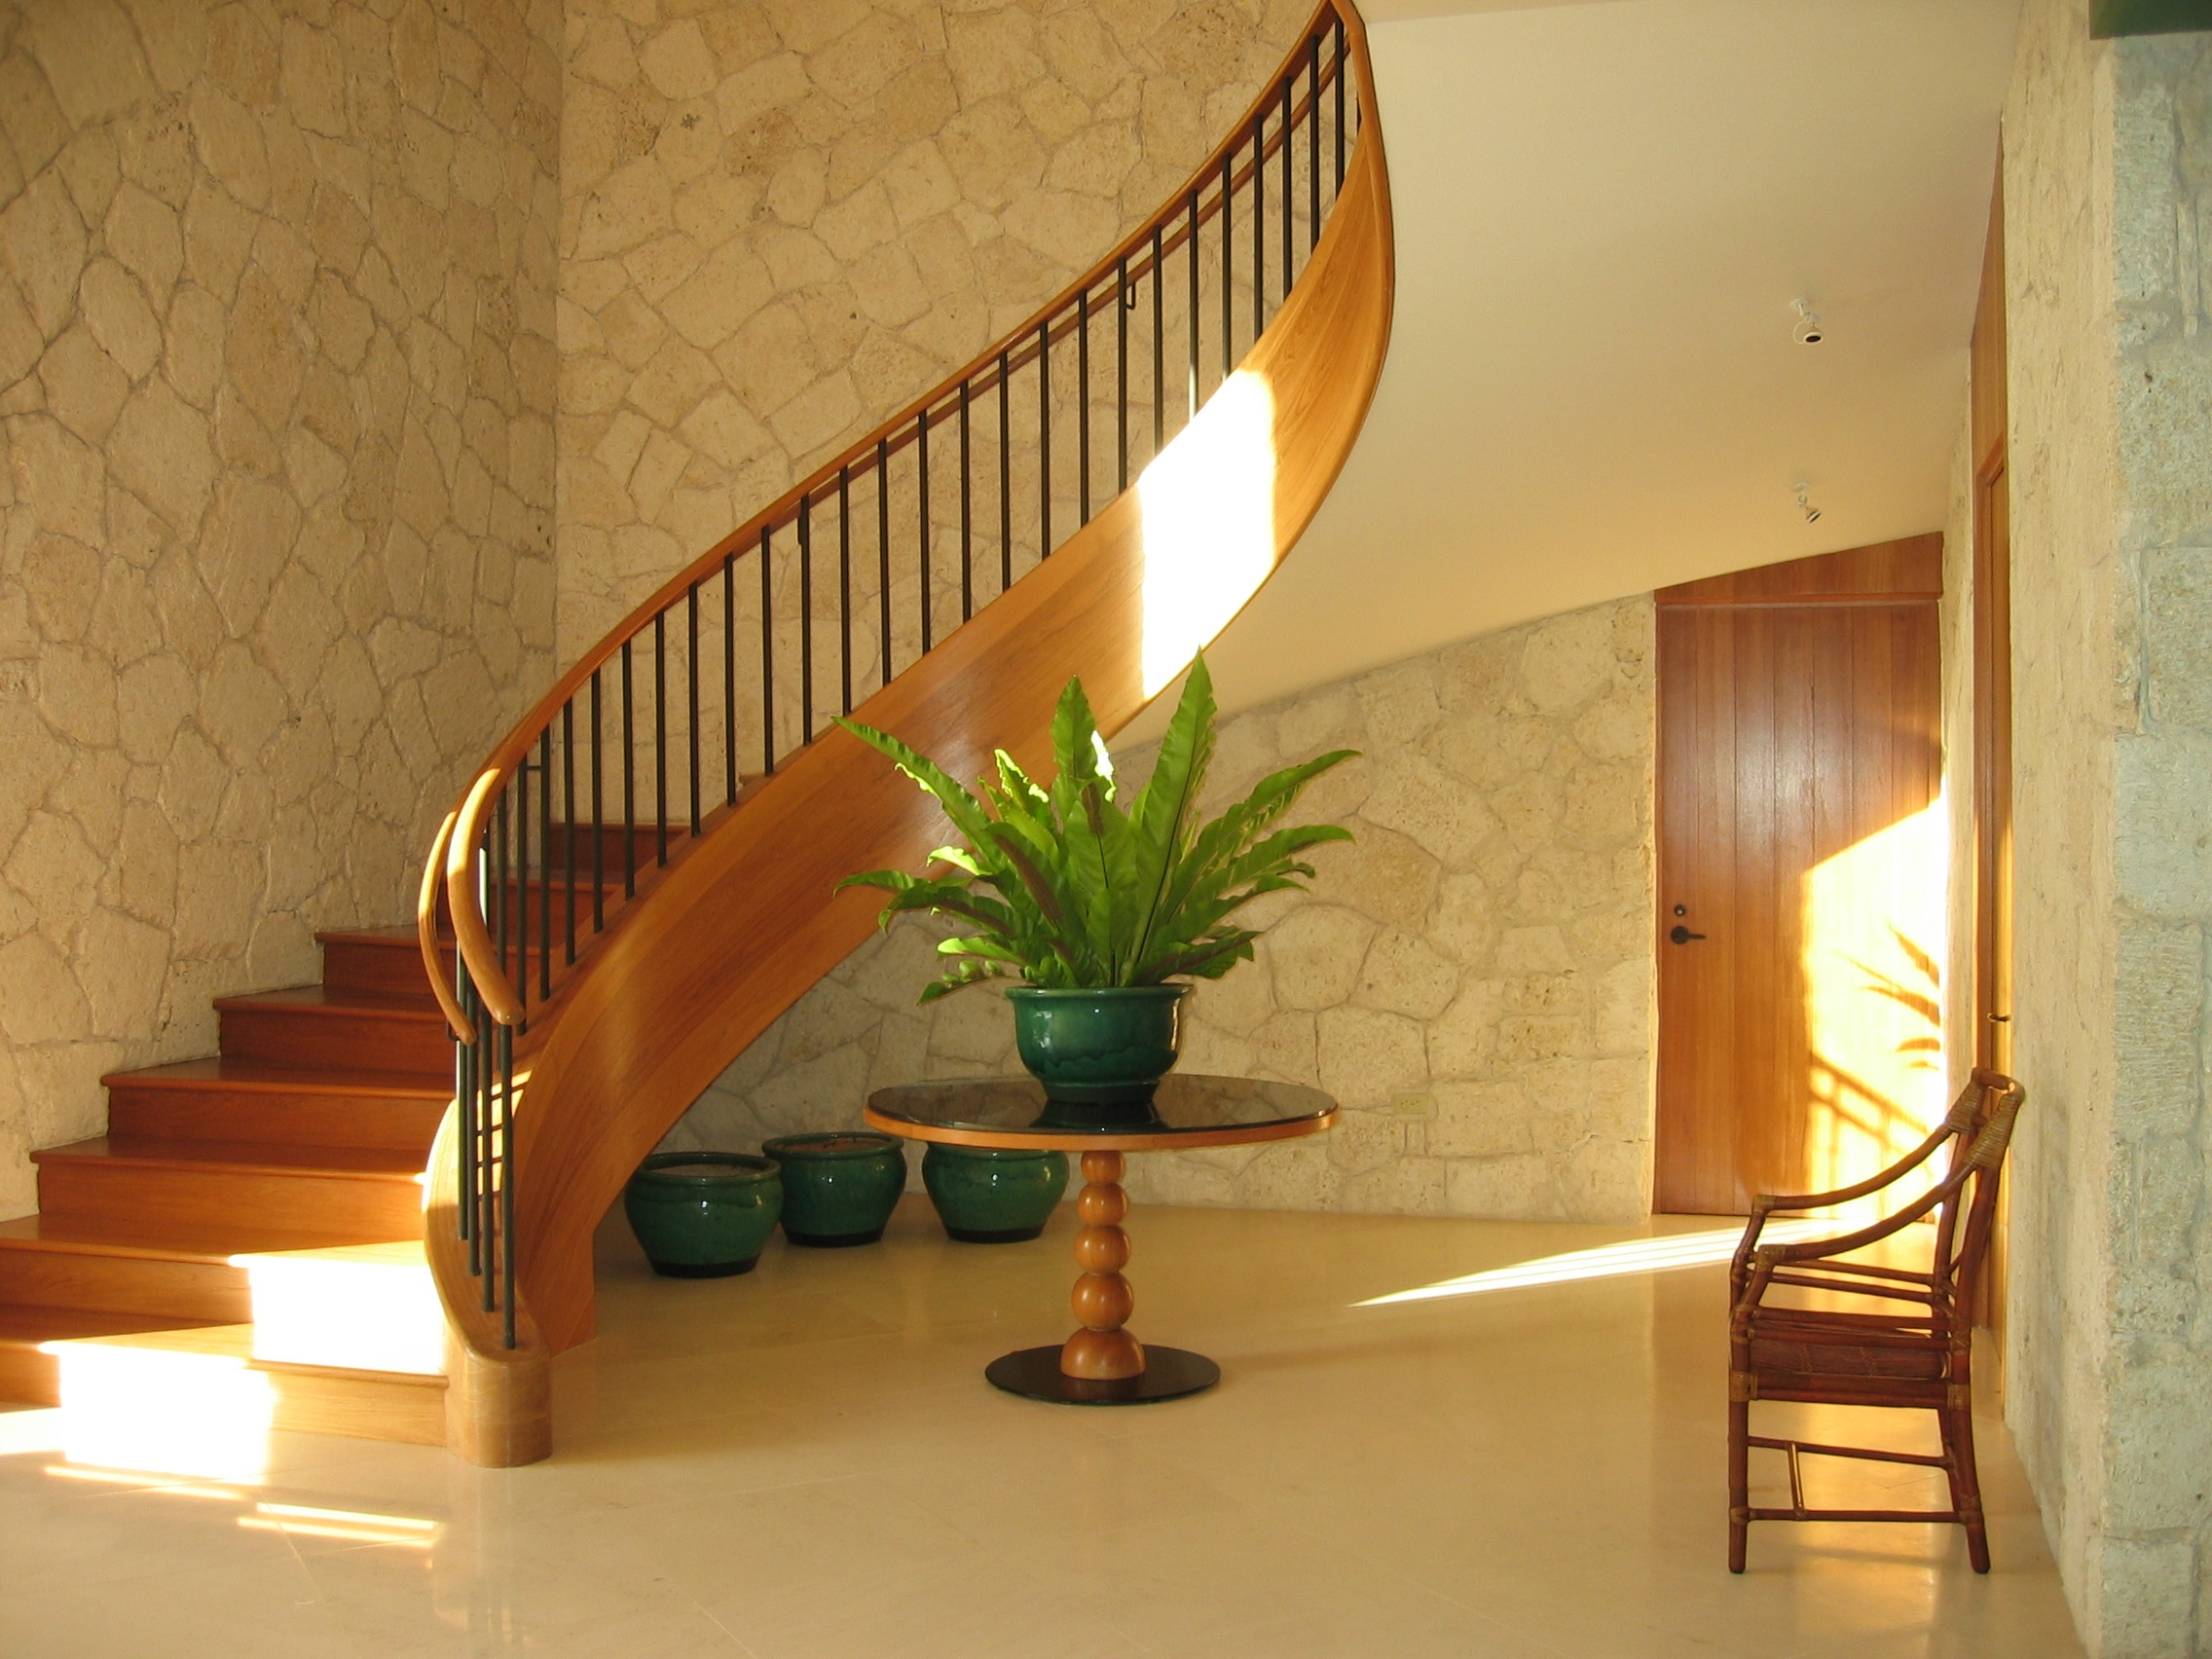 As A Licensed Contractor, We Can Provide Installation For The Stairs We  Manufacture, Greatly Simplifying A General Contractoru0027s Most Difficult  Jobsite ...